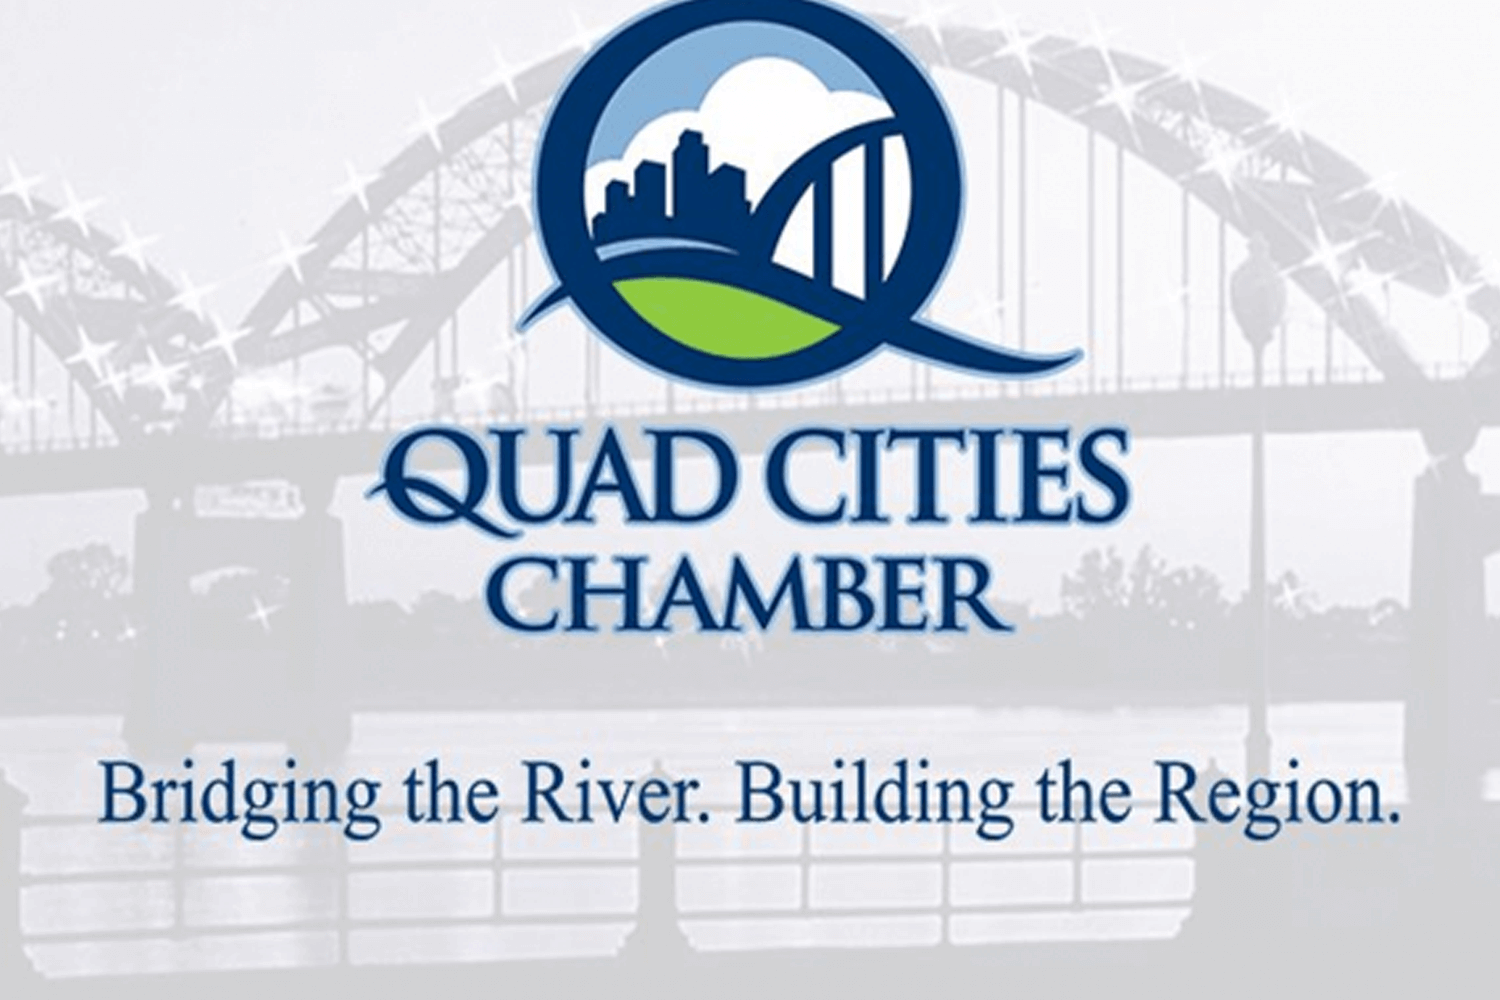 Cerkl partners with Quad Cities Chamber of Commerce